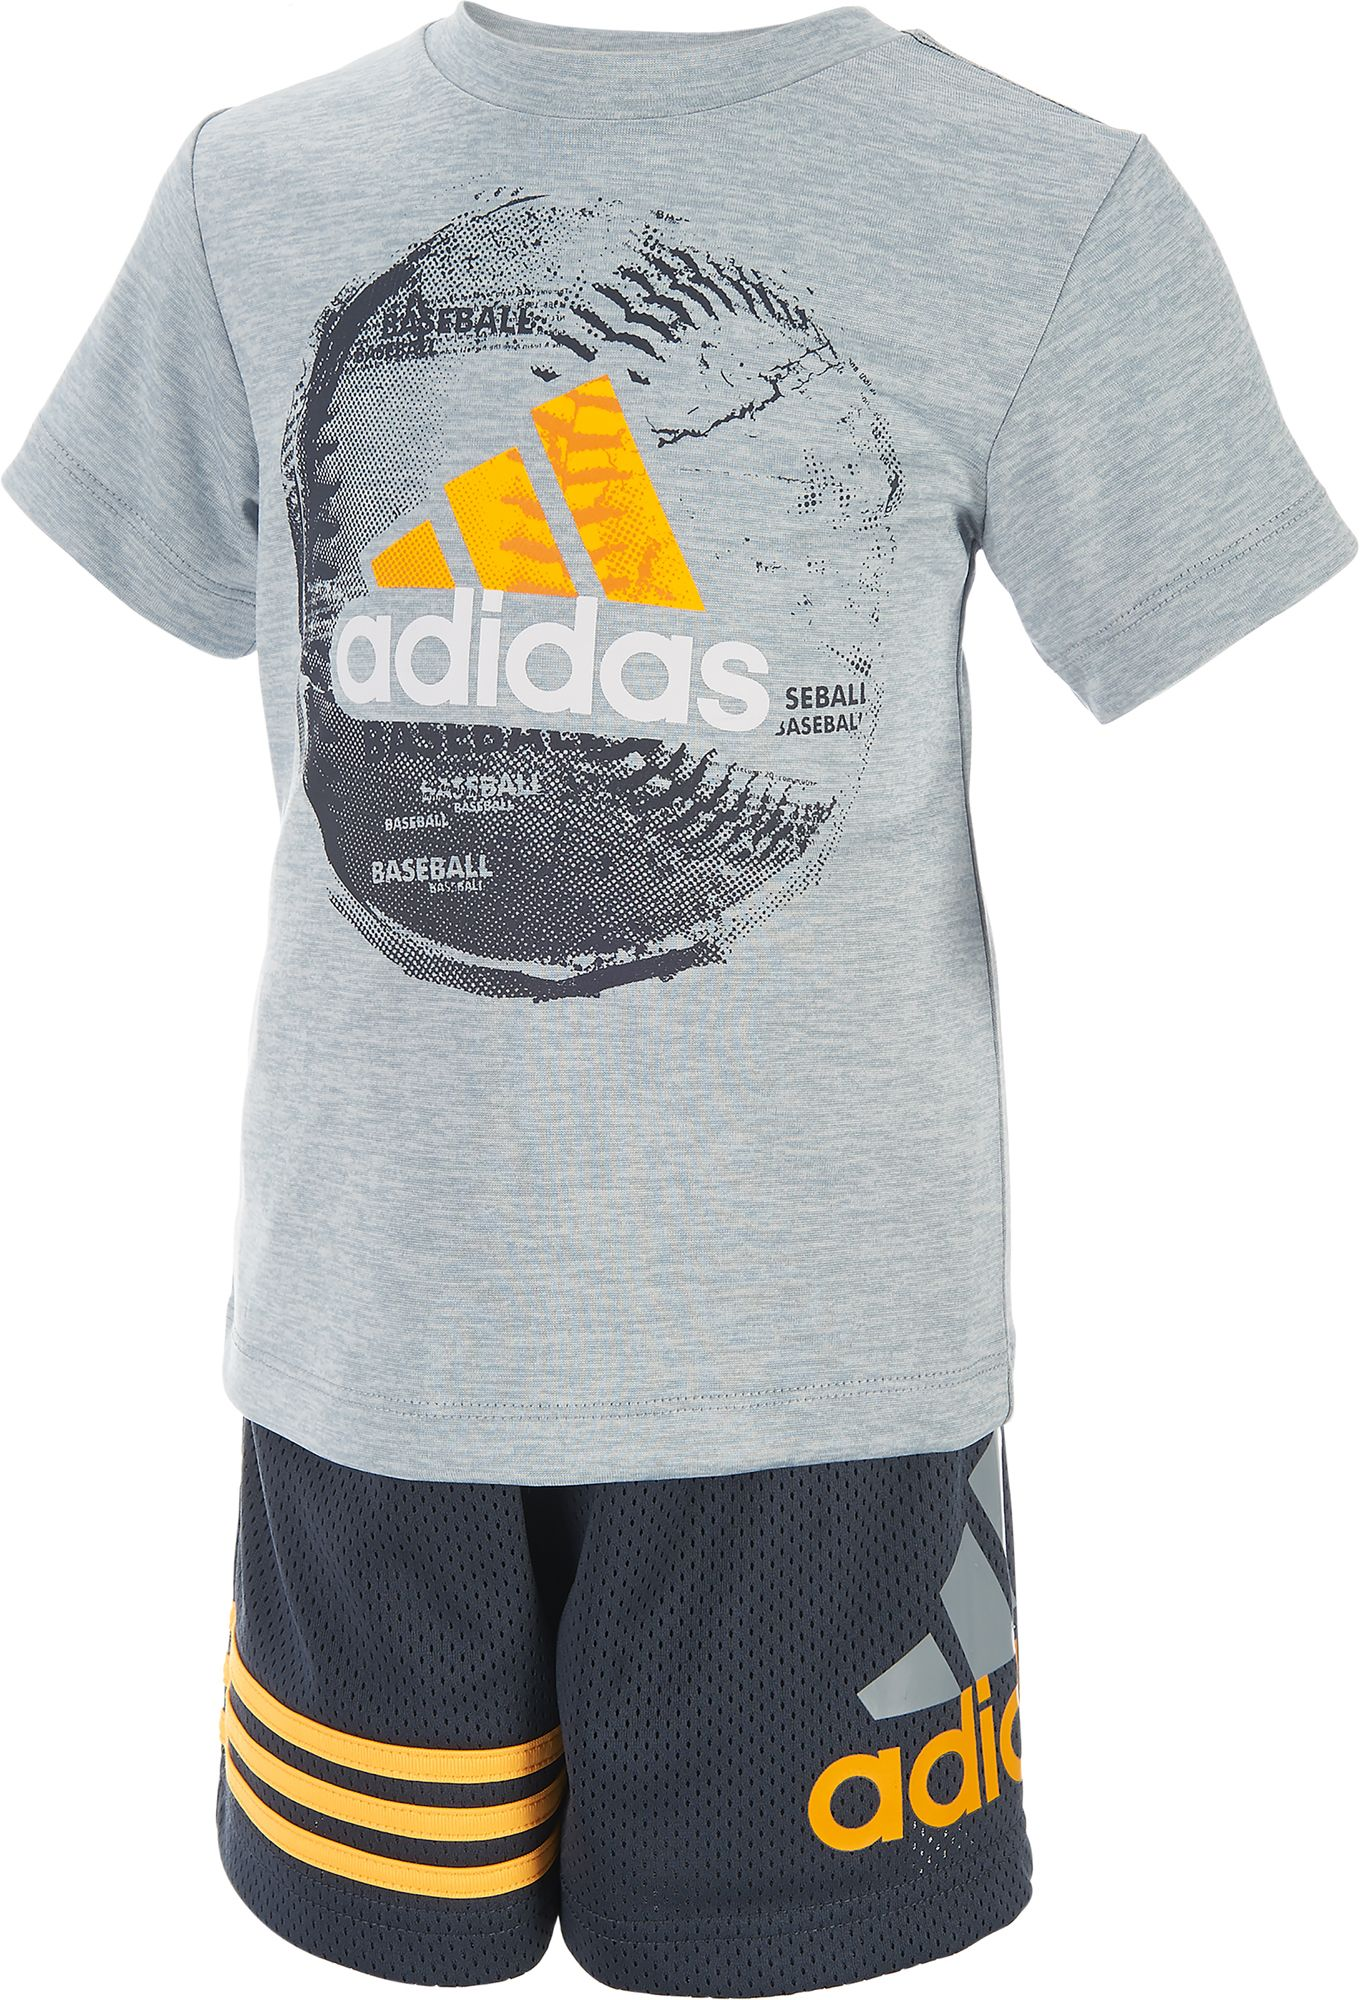 adidas Infant Boys Defender T Shirt and Shorts Two Piece Set DICKS Sporting Goods